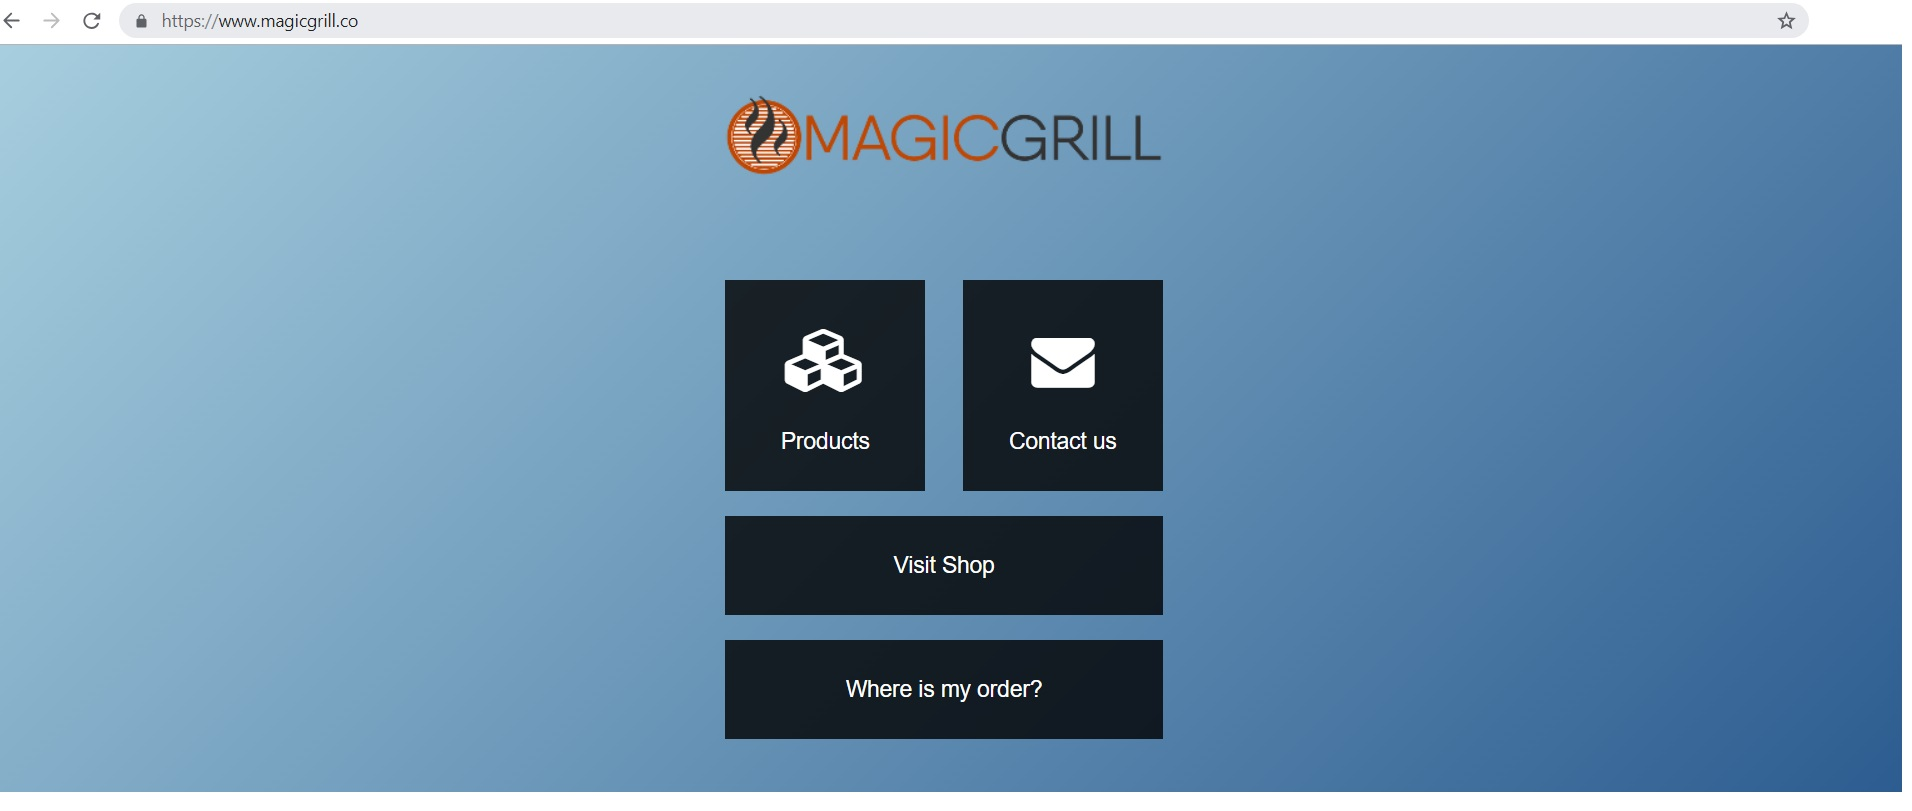 magicgrill.co